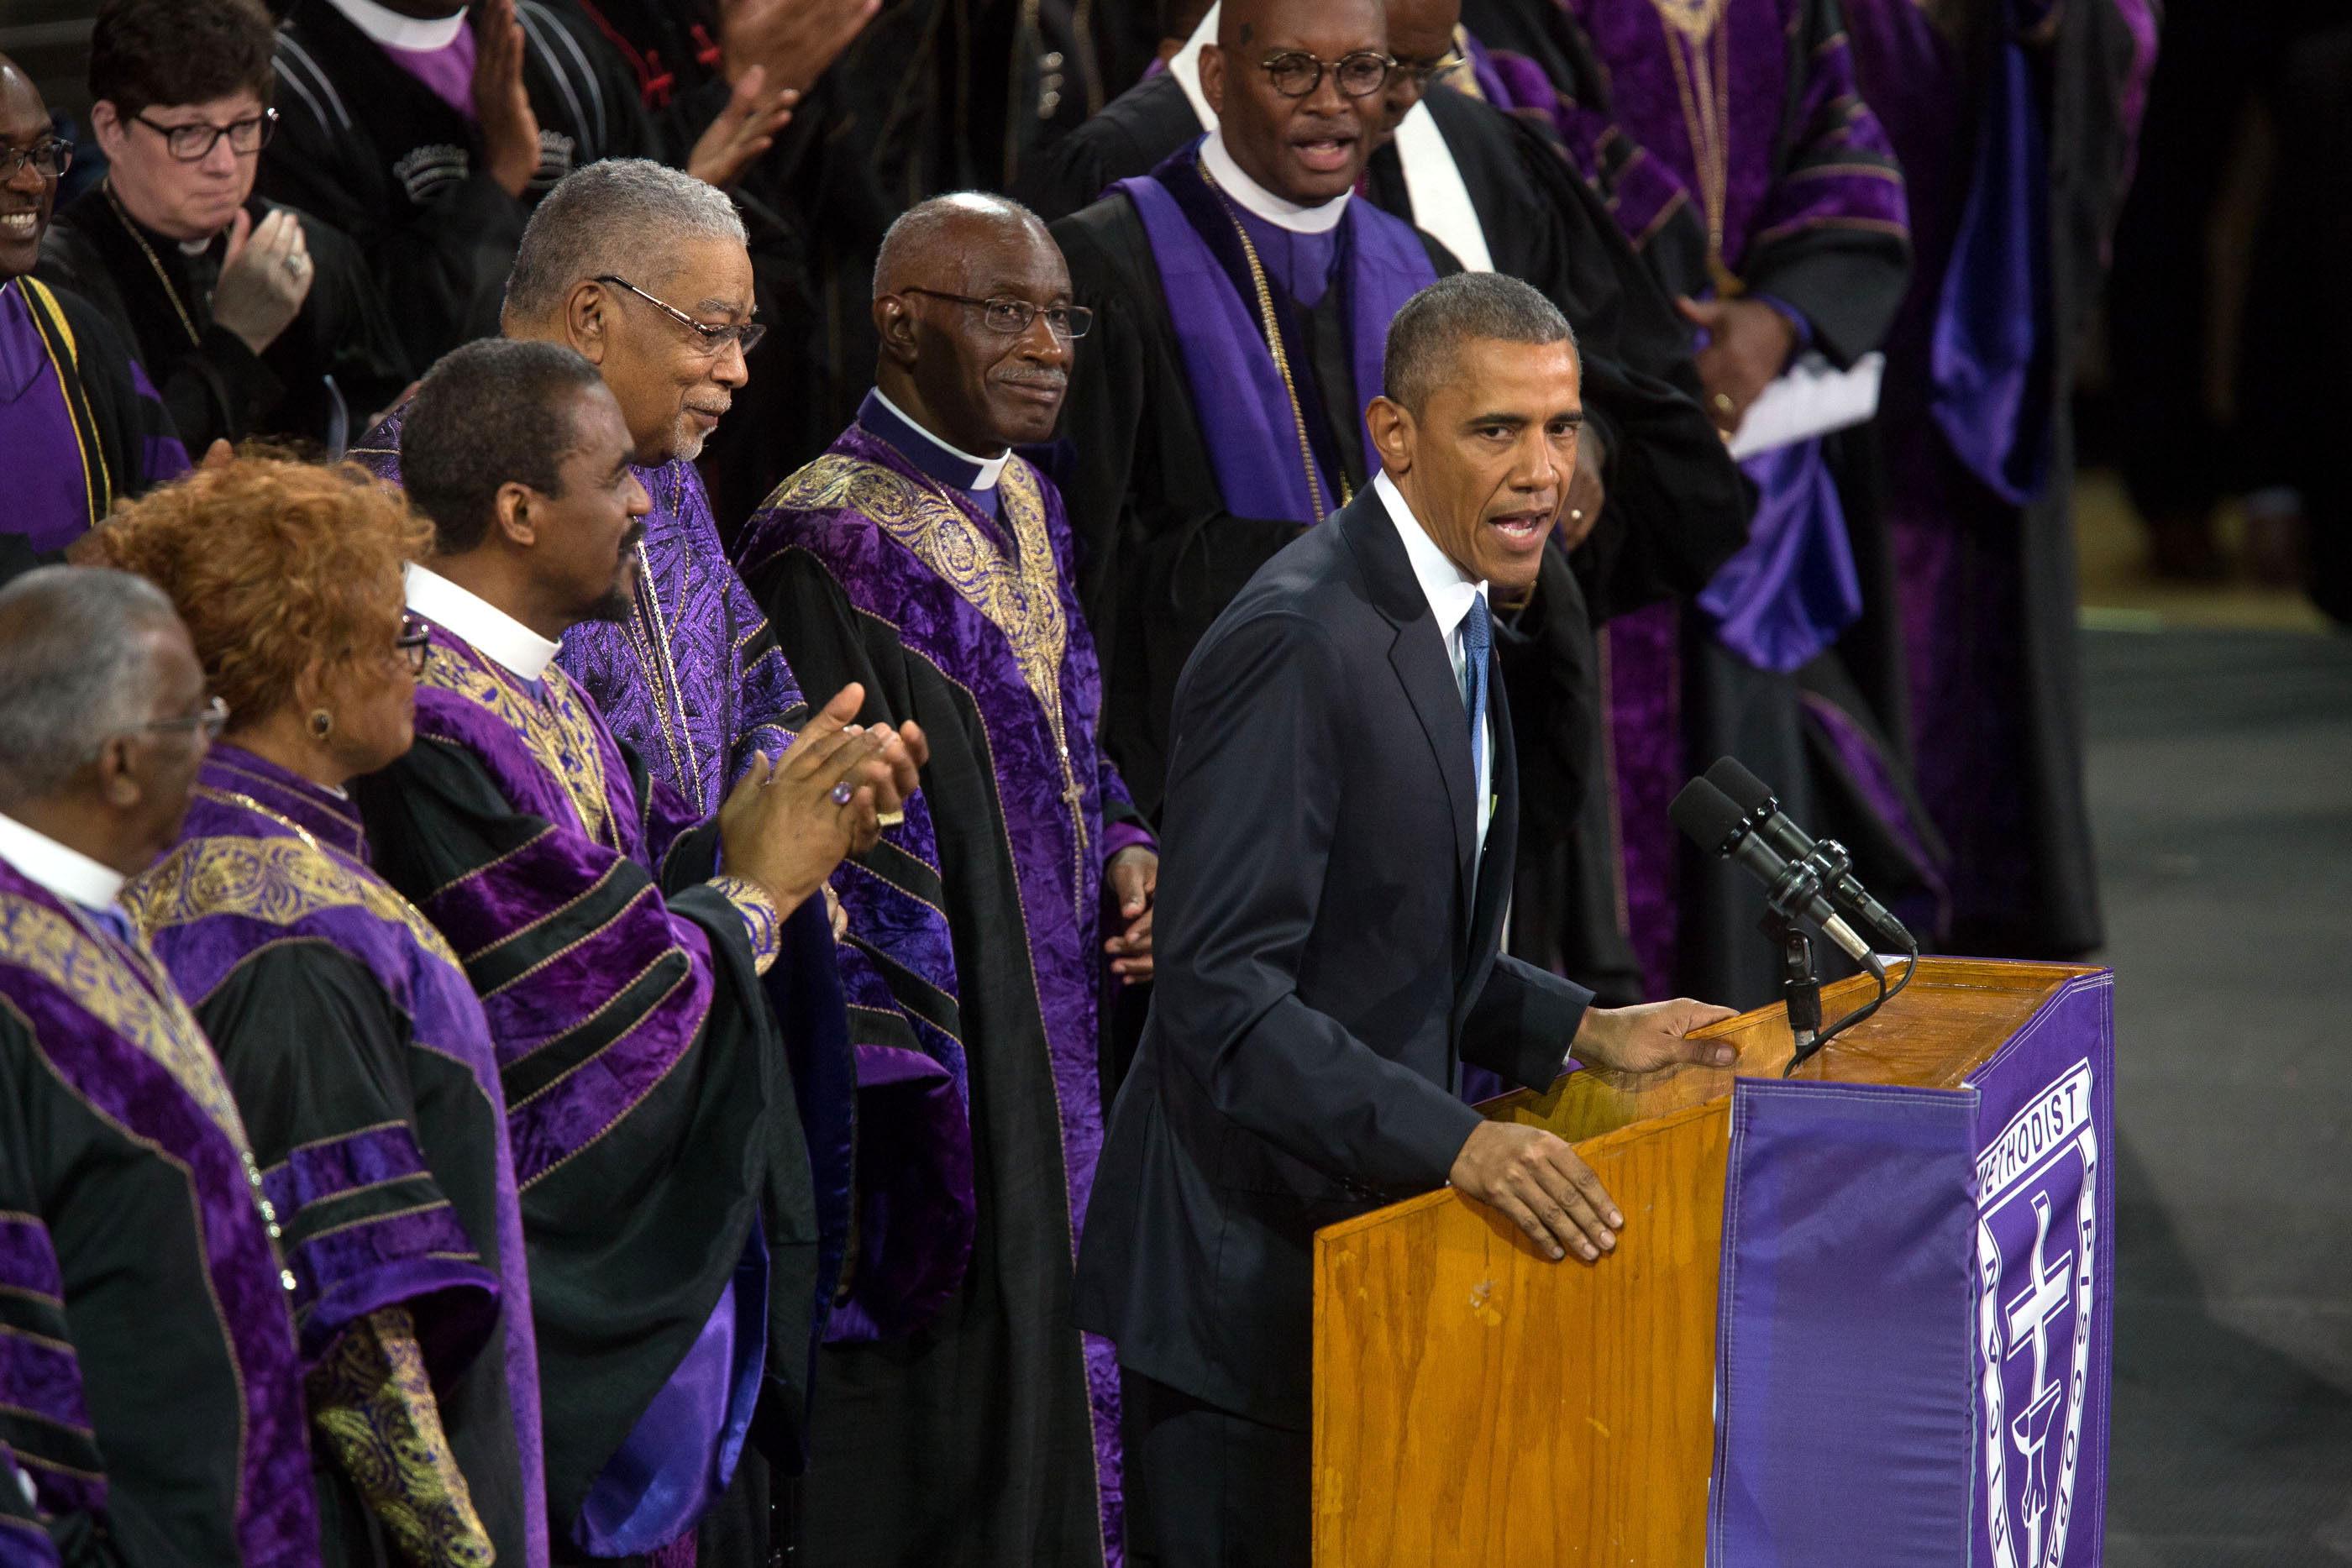 President Obama delivers the eulogy at the funeral of Reverend Clementa Pinckney